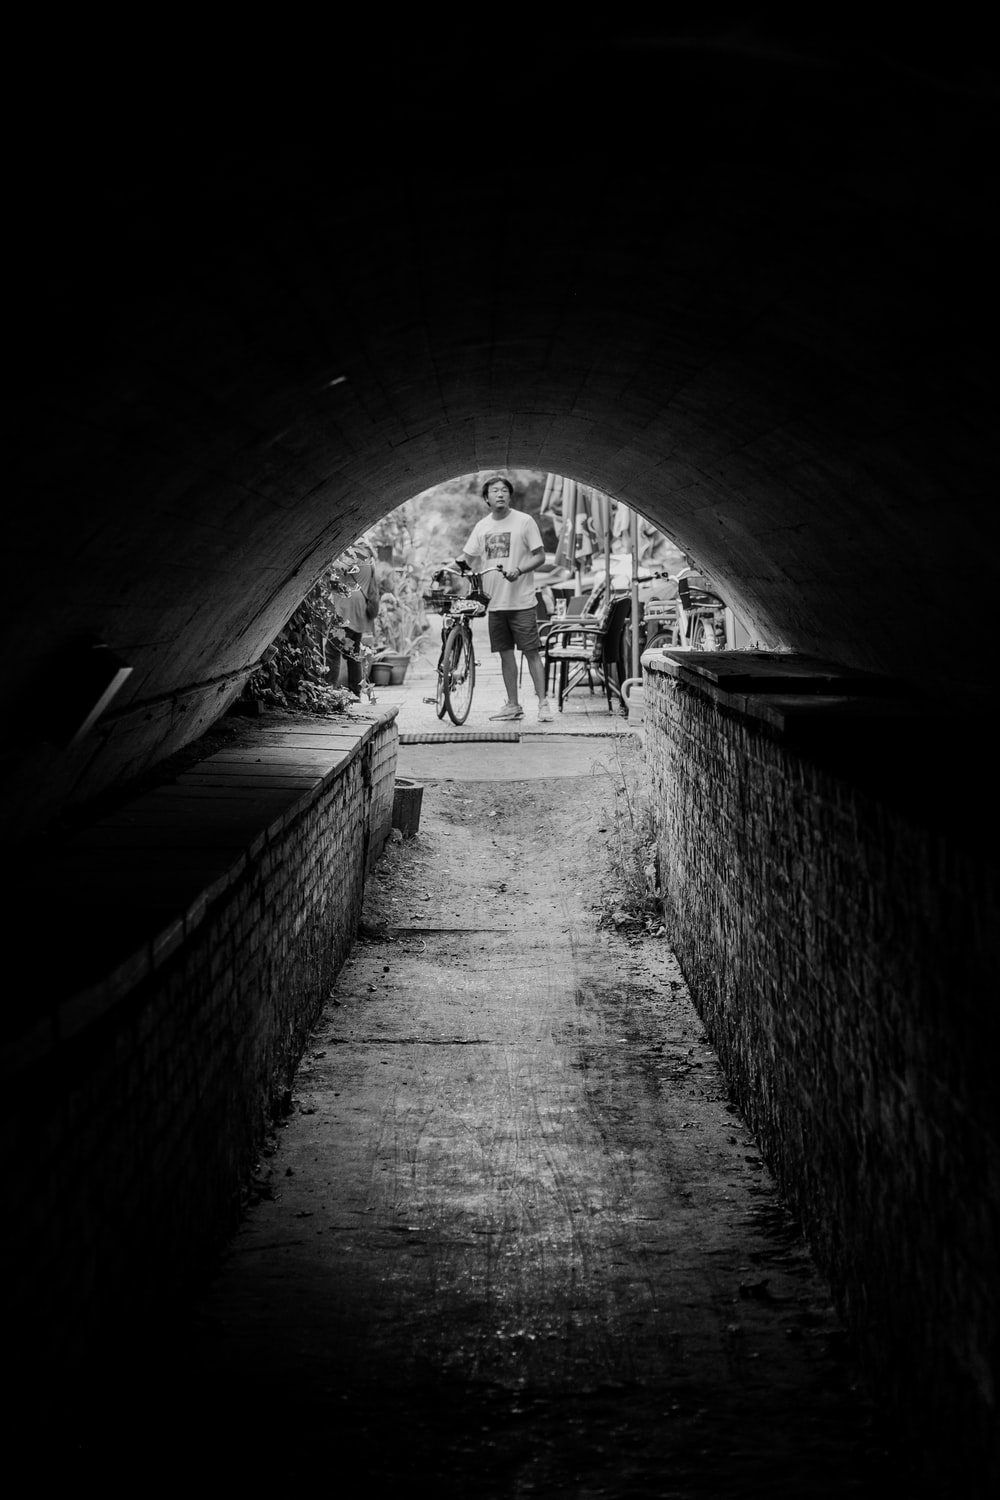 grayscale photo of people walking on tunnel